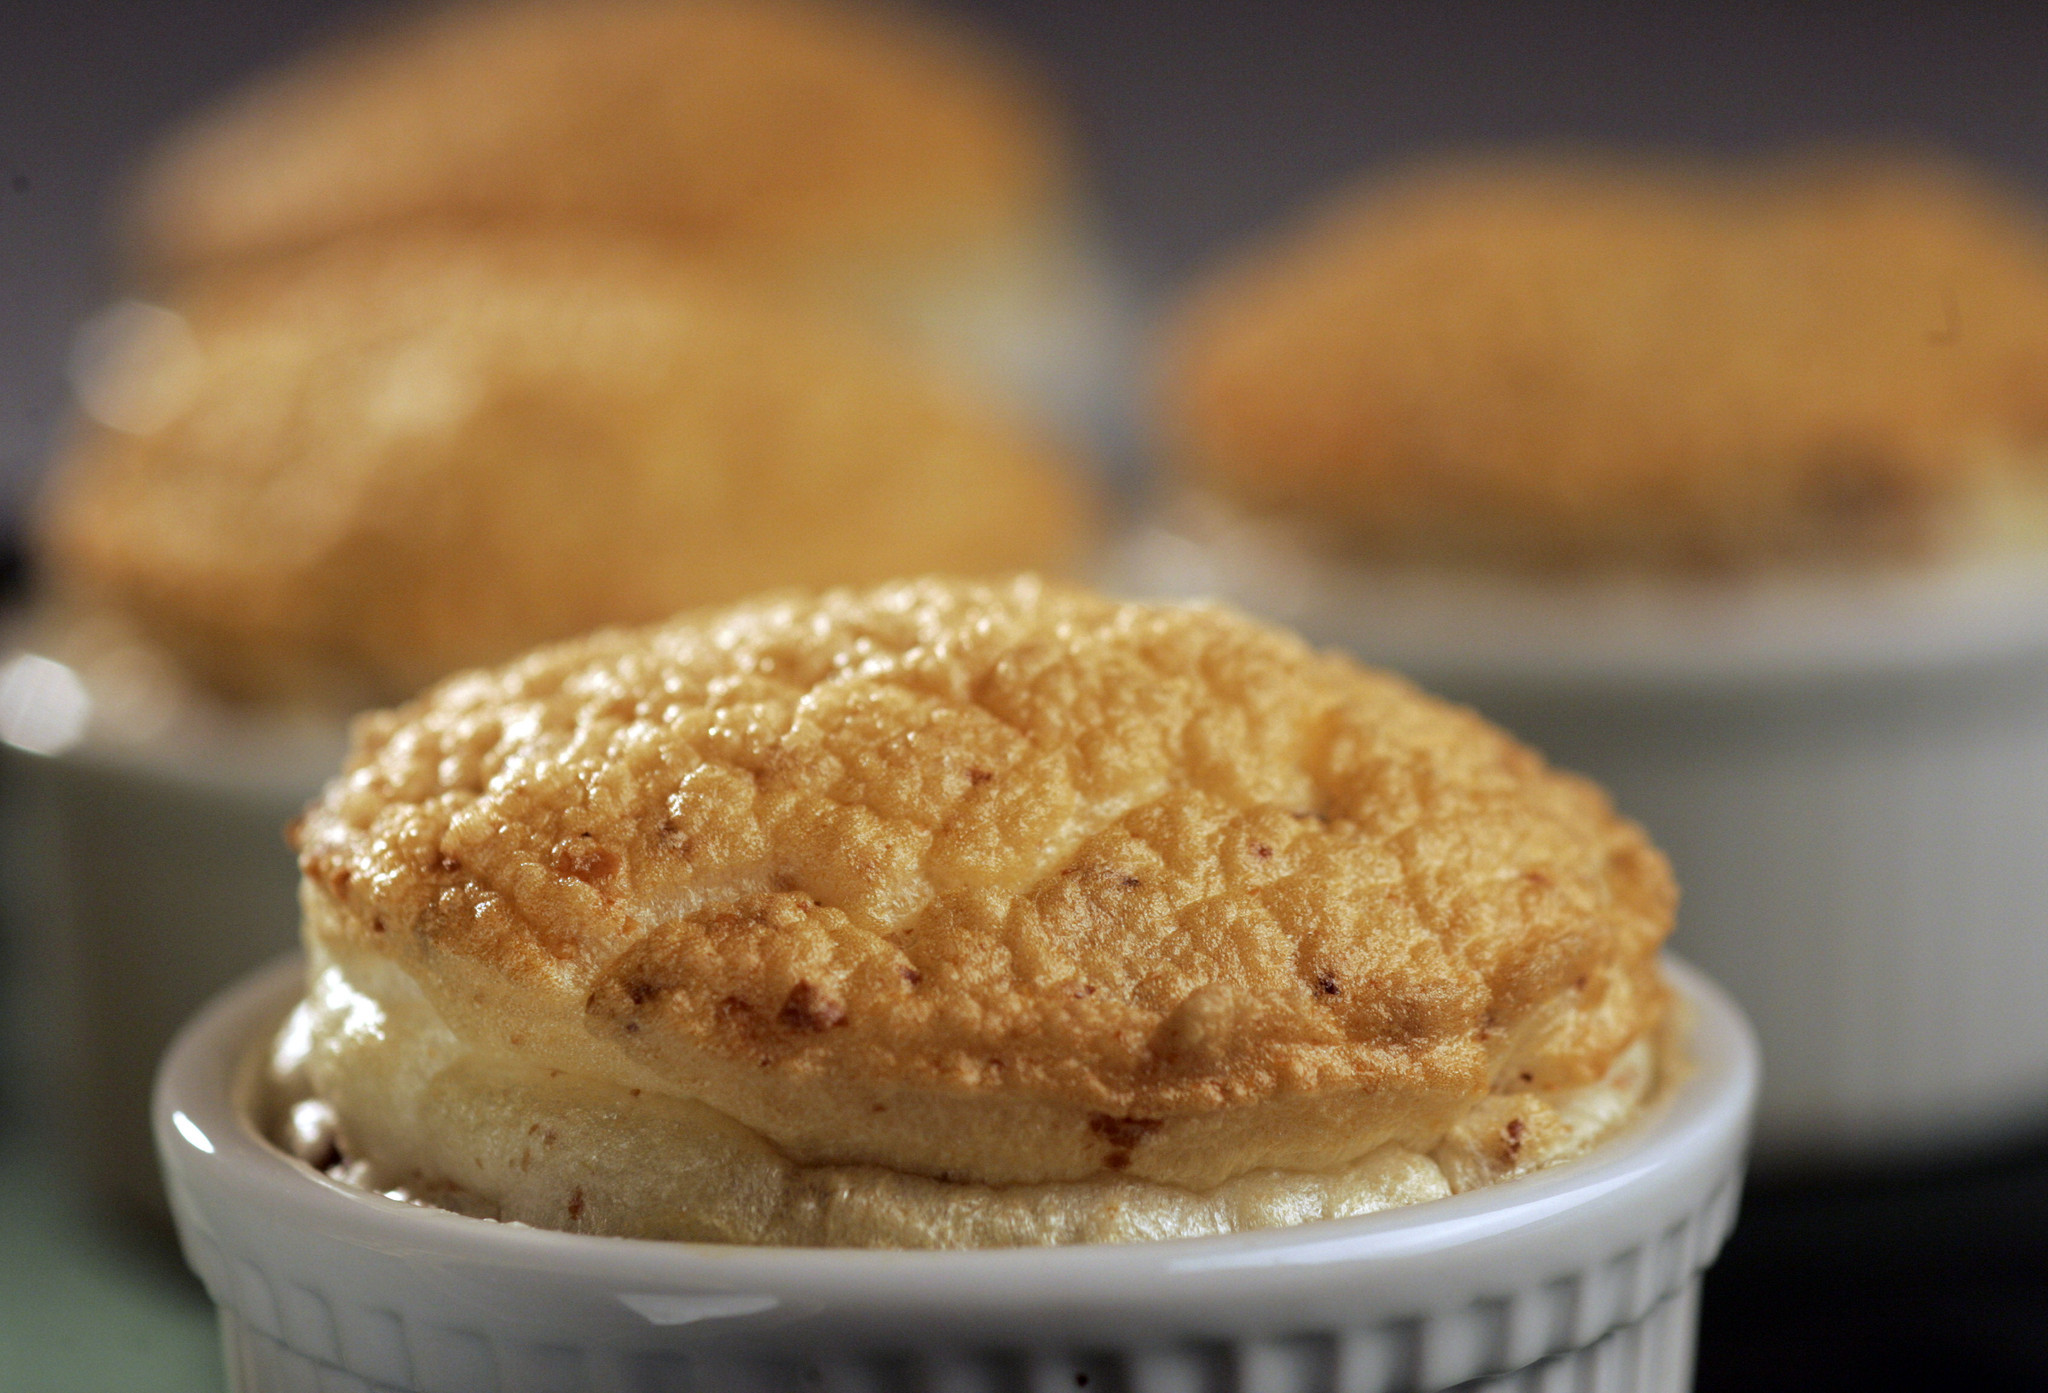 Photos: 97 great Thanksgiving recipes - Sweet potato puree with hazelnut souffle top